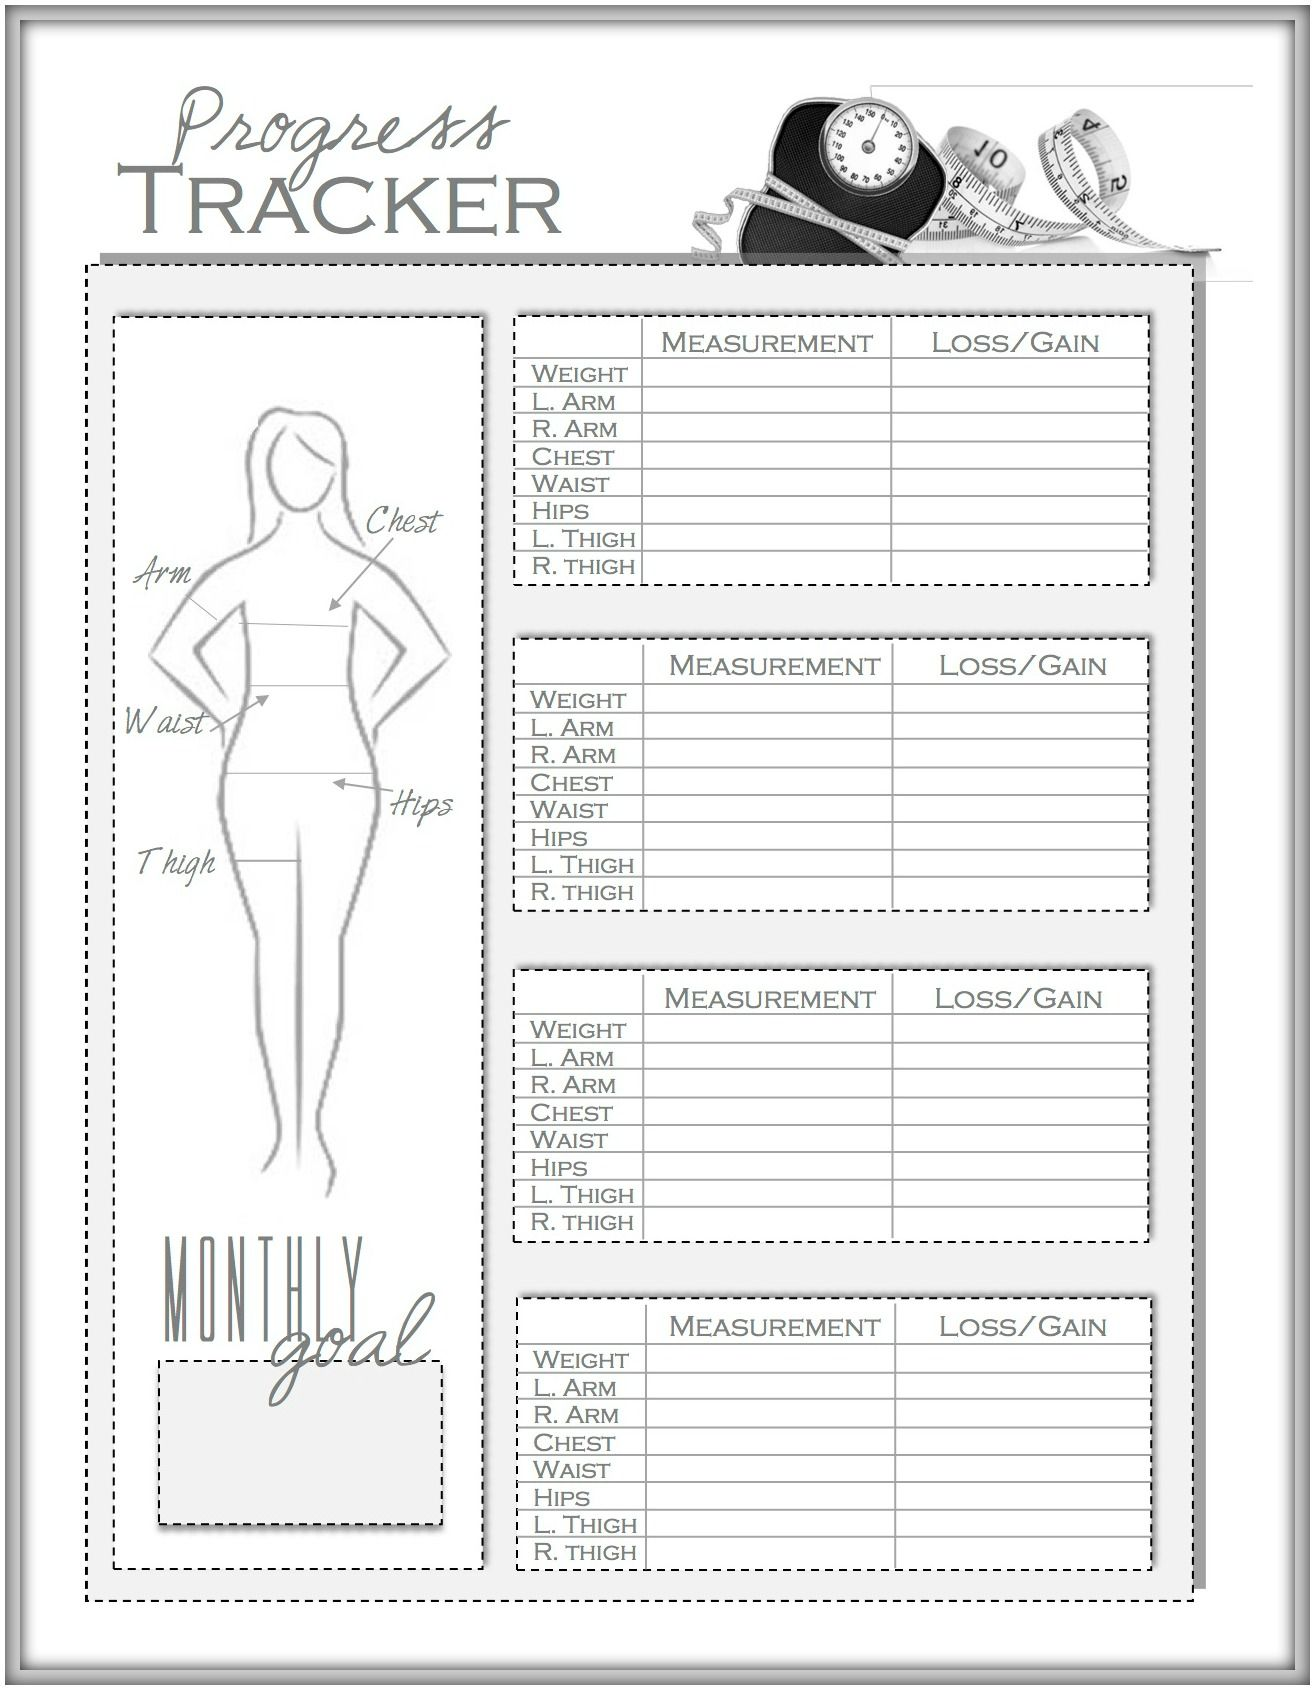 Weight loss and measurement progress tracker healthy me